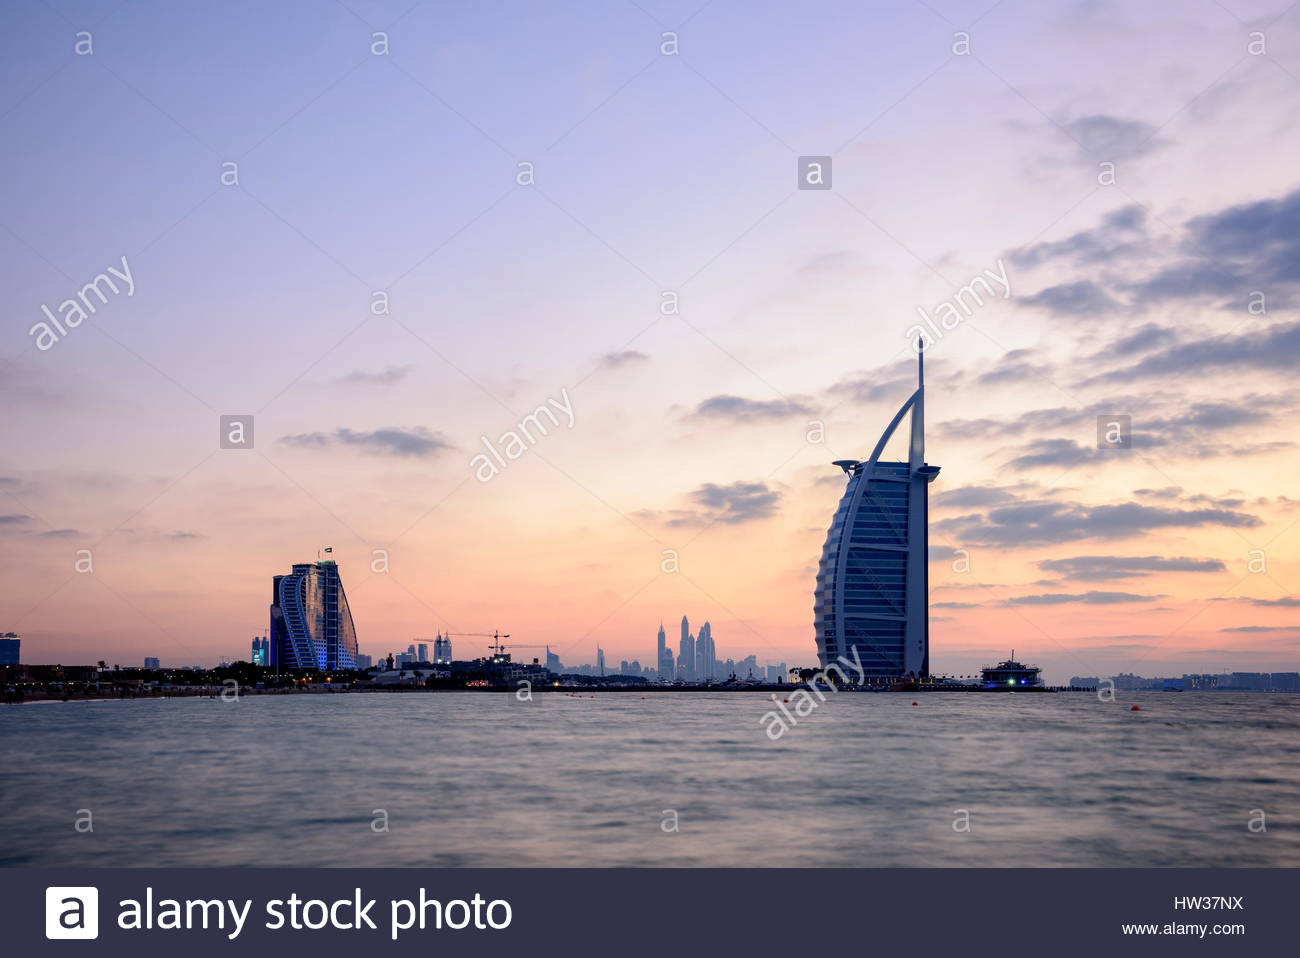 The iconic Burj Al Arab, Jumeirah Beach Hotel  Hotel and the 360 lounge (on the left), Dubai, United Arab Emirates - Stock Image